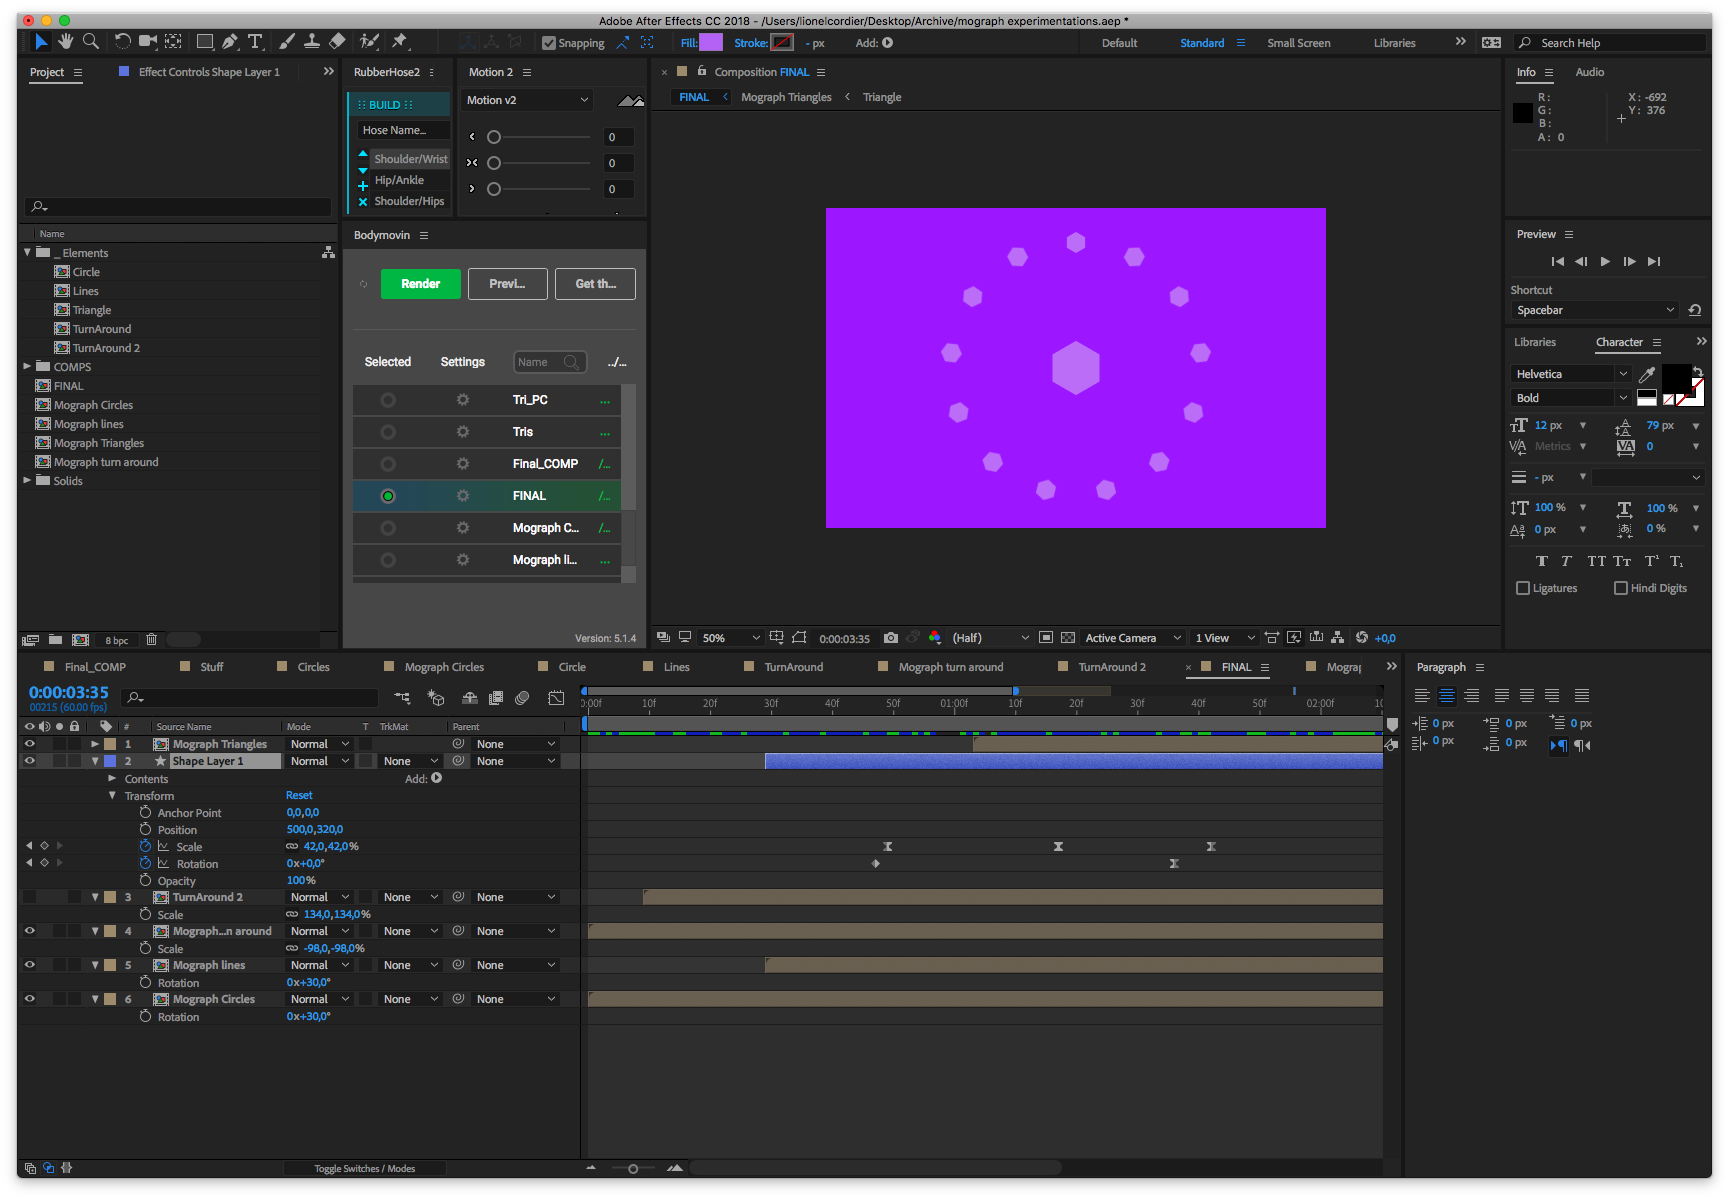 With Lottie animations, Ludus gets a whole new dimension